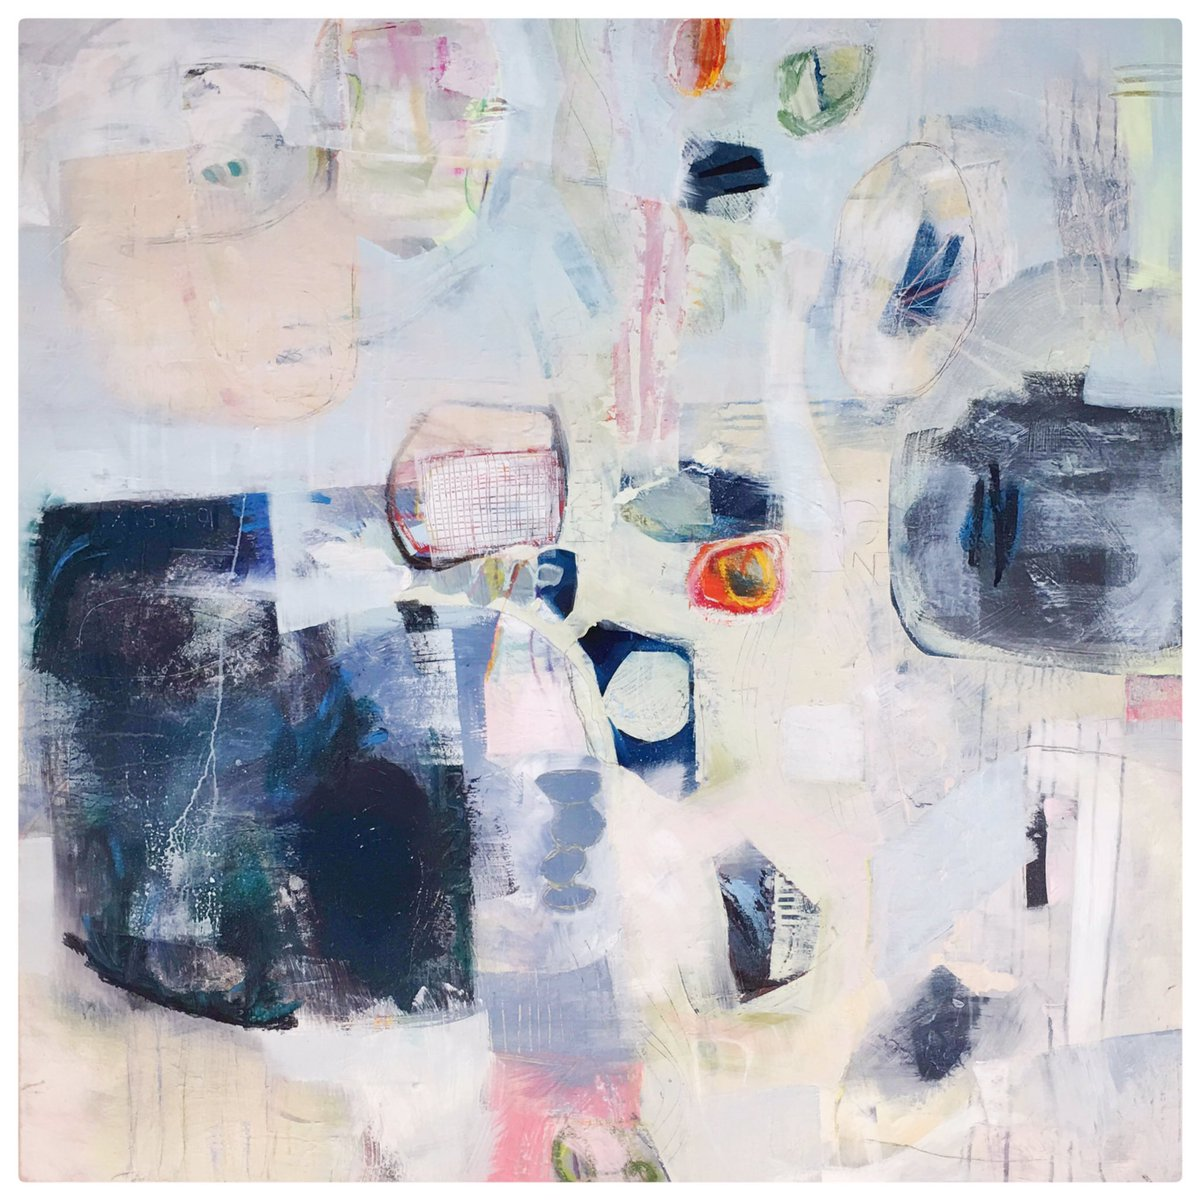 'Terra (non) Firma' 100x100cm acrylic and mixed media on canvas #abstractart #abstract #contemporaryart https://t.co/mTk55oepY1